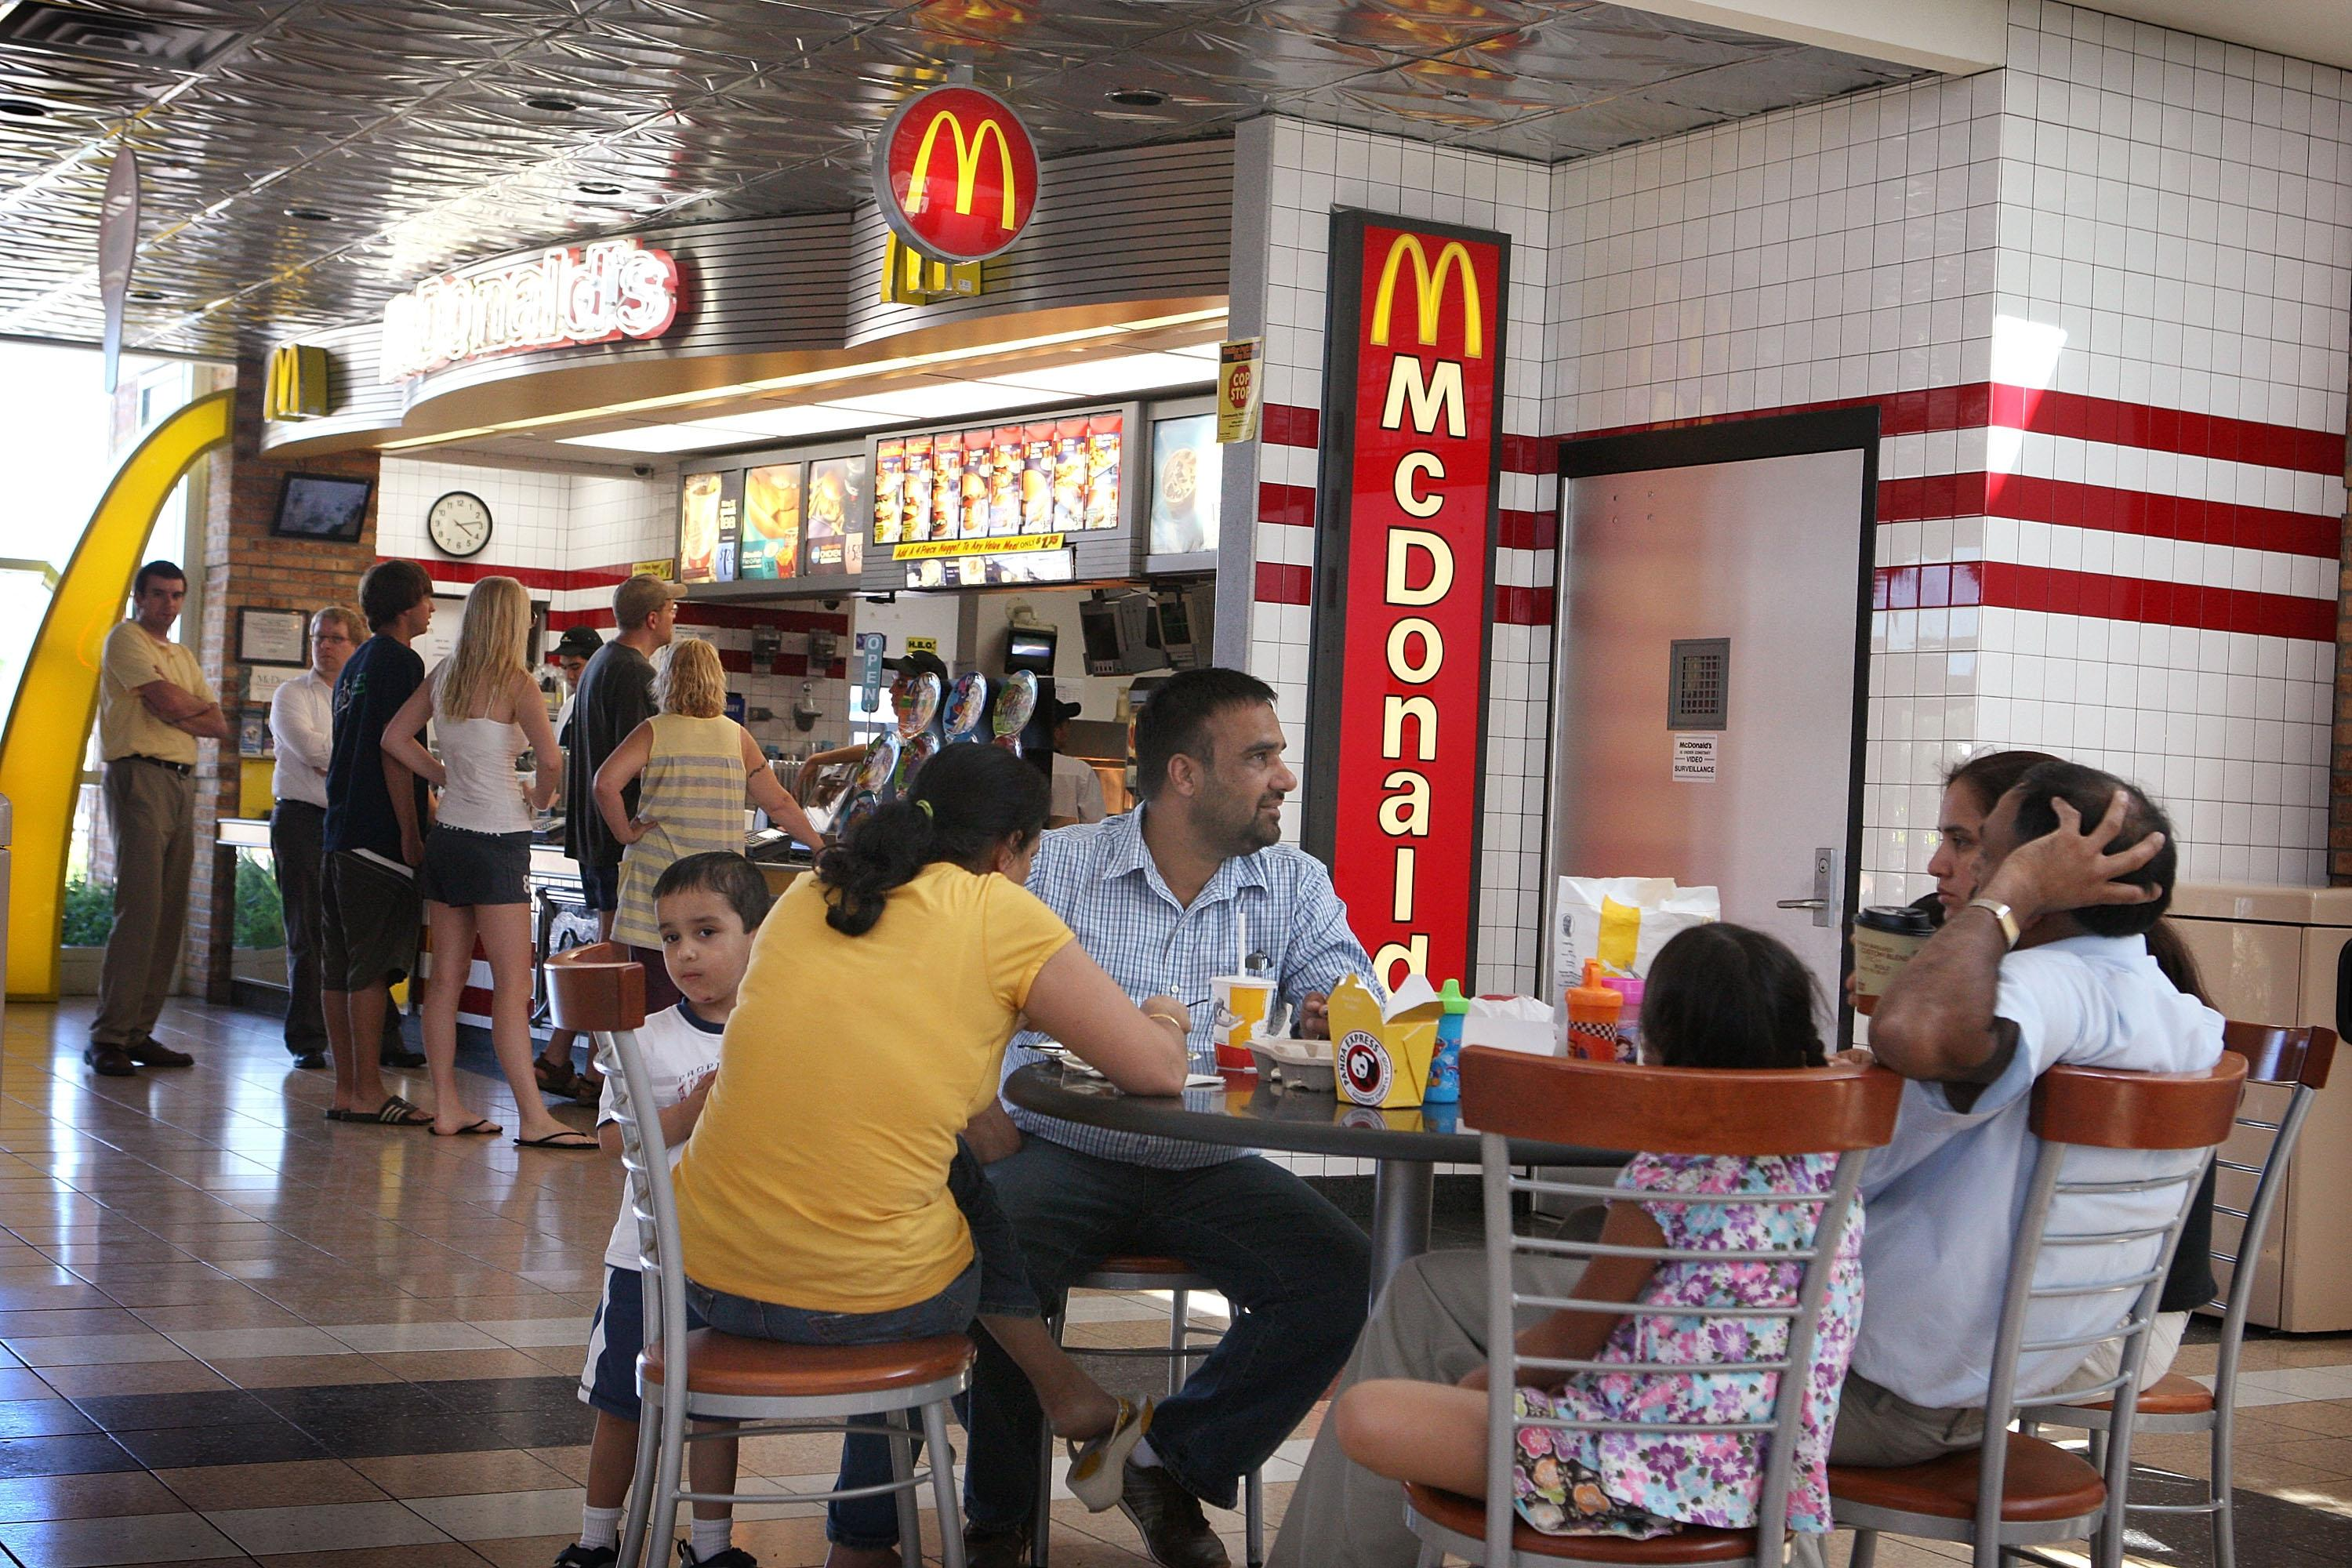 mc donald fast food restaurants essay Fast-food enterprises stores constituted over 800 thousand, the fast-food industry turnover reached 75 billion yuan, accounting for 1/3 of the total food, and the beverage industry and its turnover over the previous year had an increase of 20%.